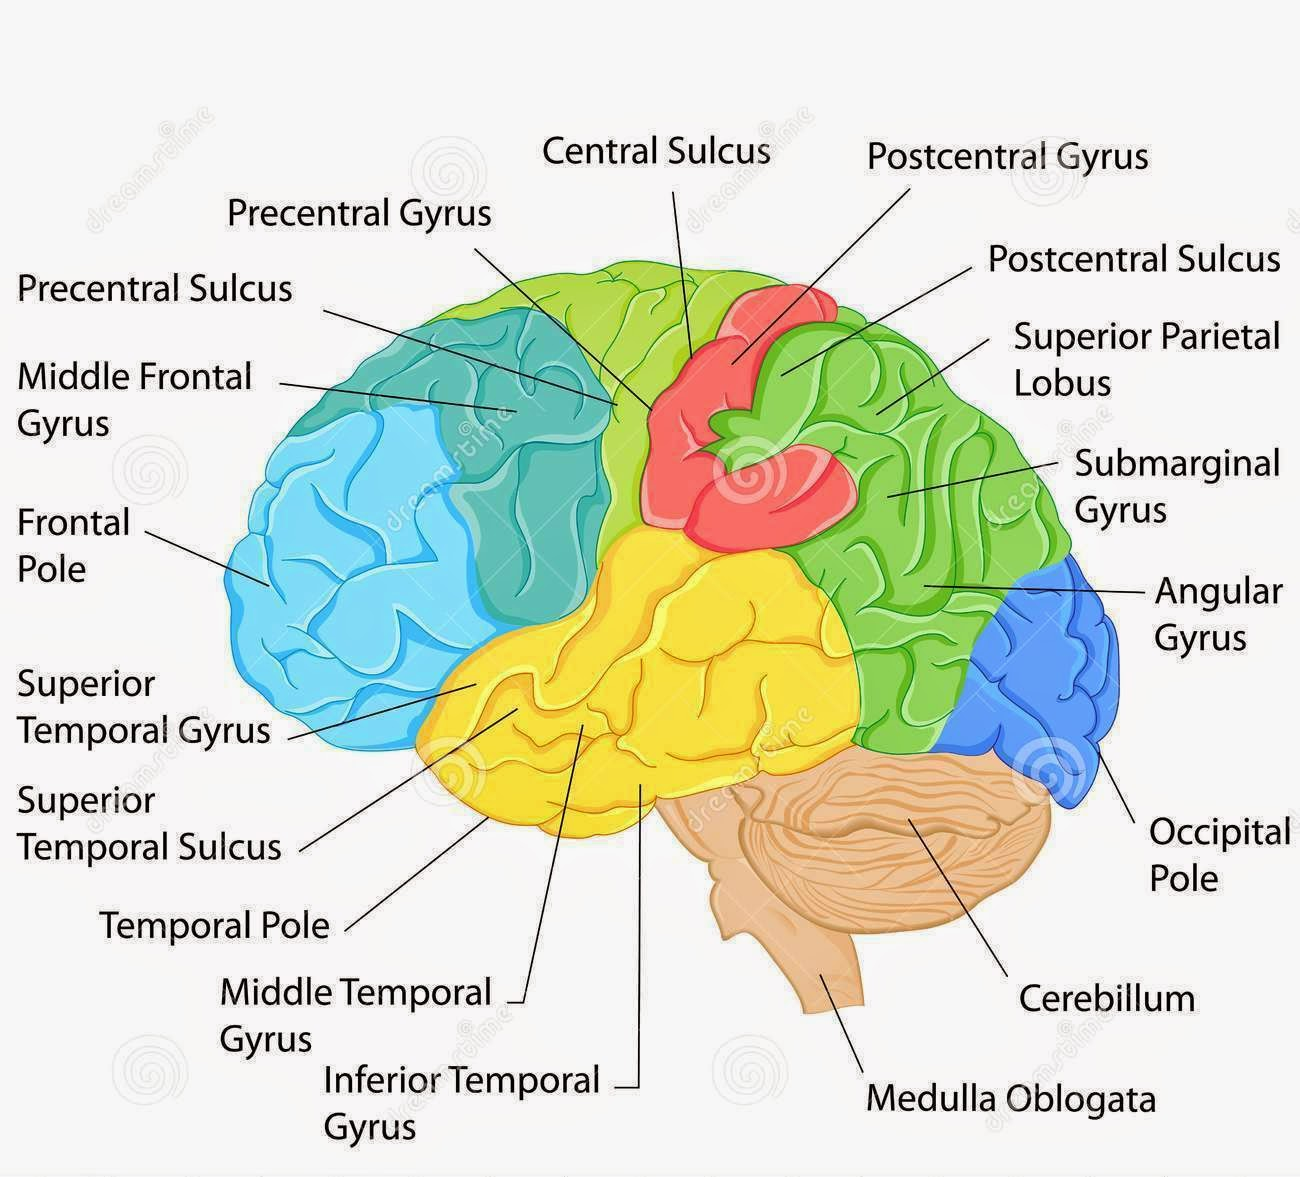 The Brain Labeled is part of  Labeled Sagittal Brain Model